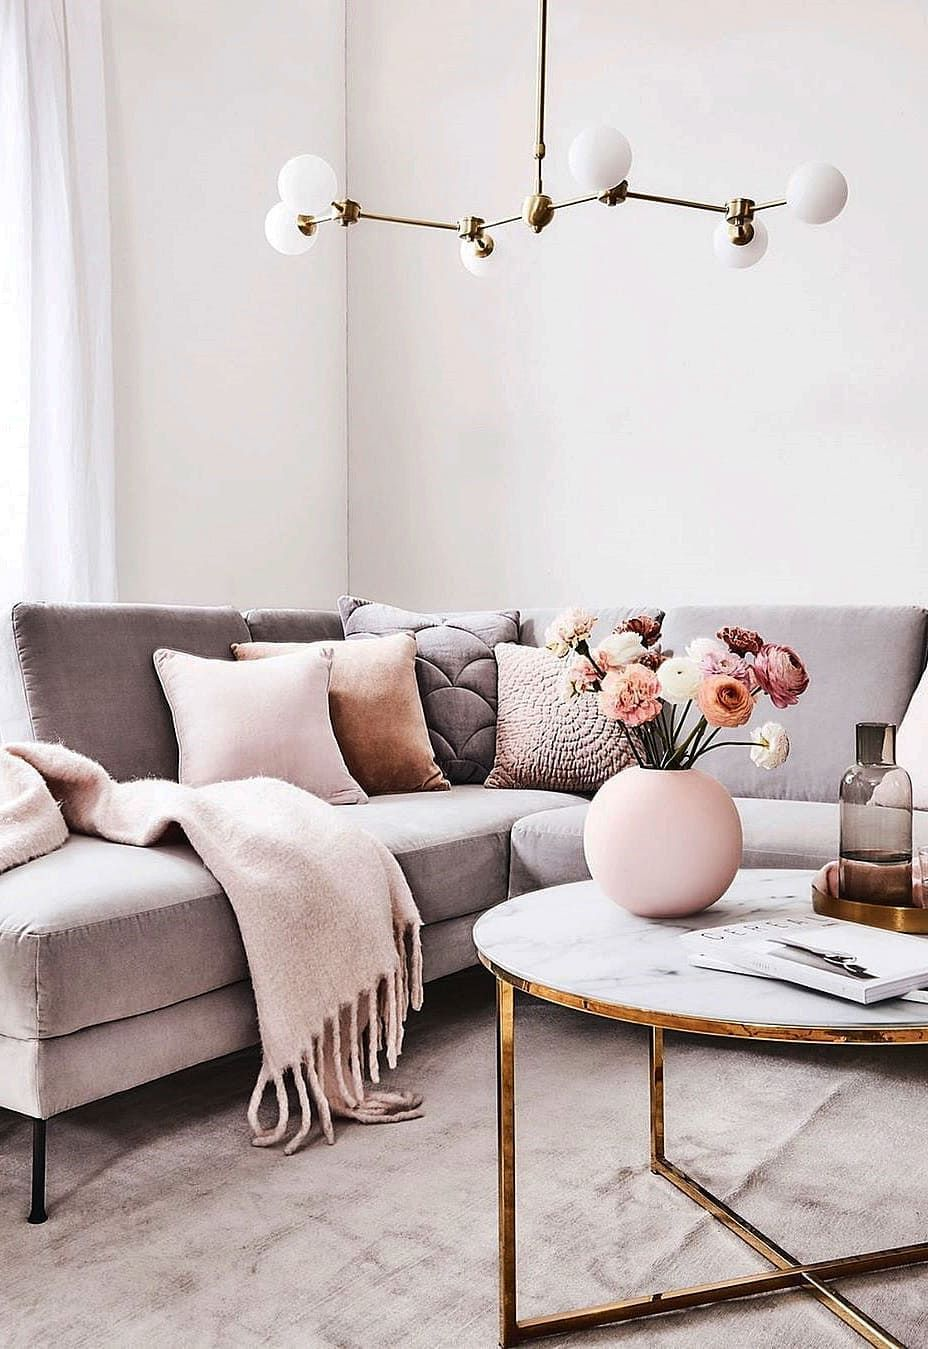 40 Decor Ideas To Look For Those Who Want To Renovate The Living